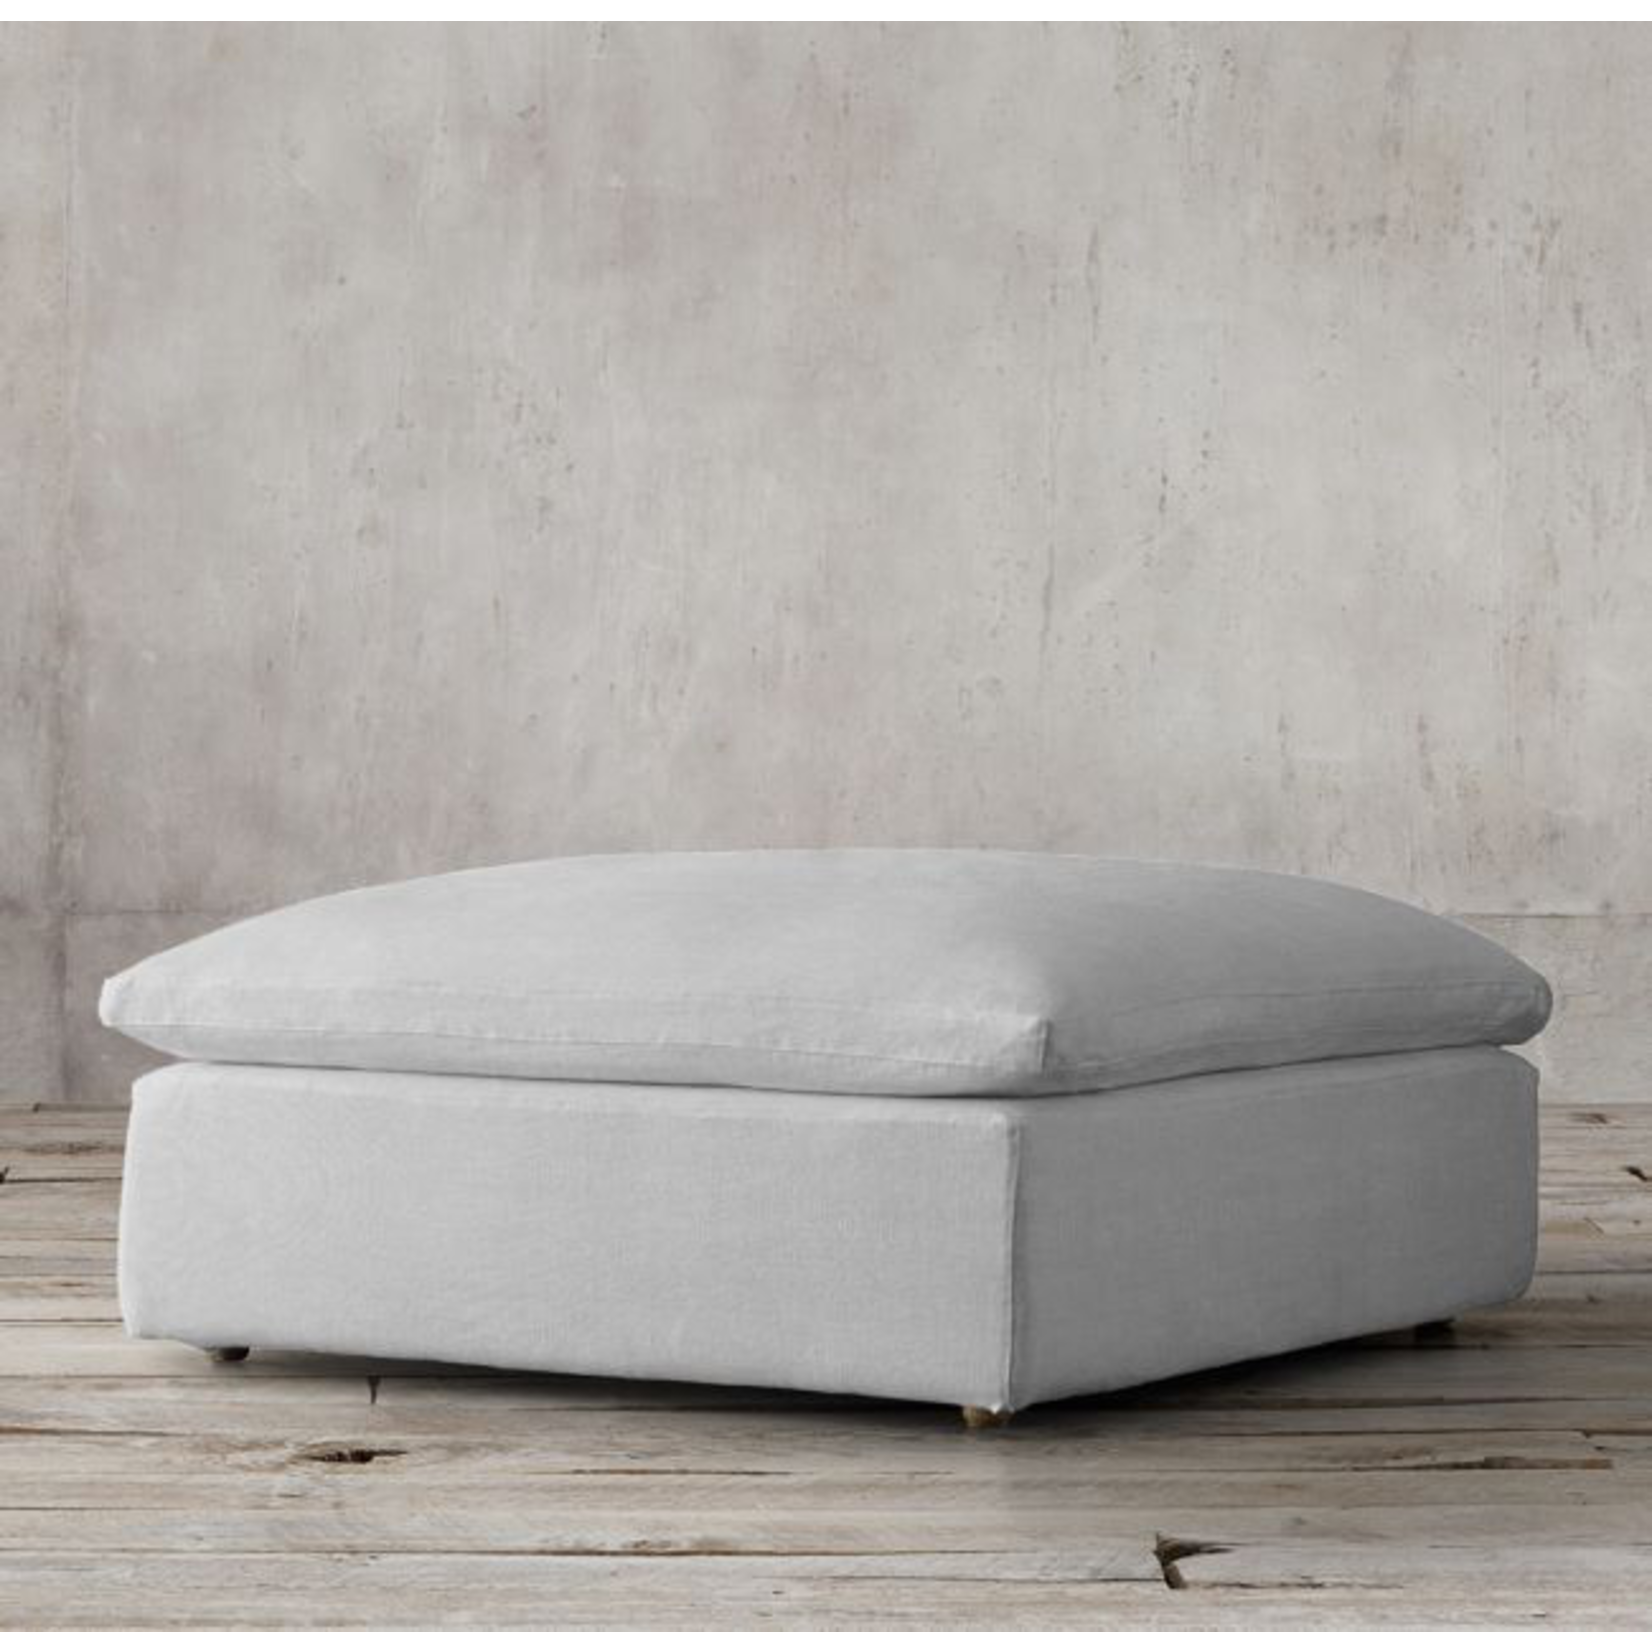 TIMOTHY OULTON SECTIONAL CLOUD SM FOOTSTOOL-GALTA LINEN GREY